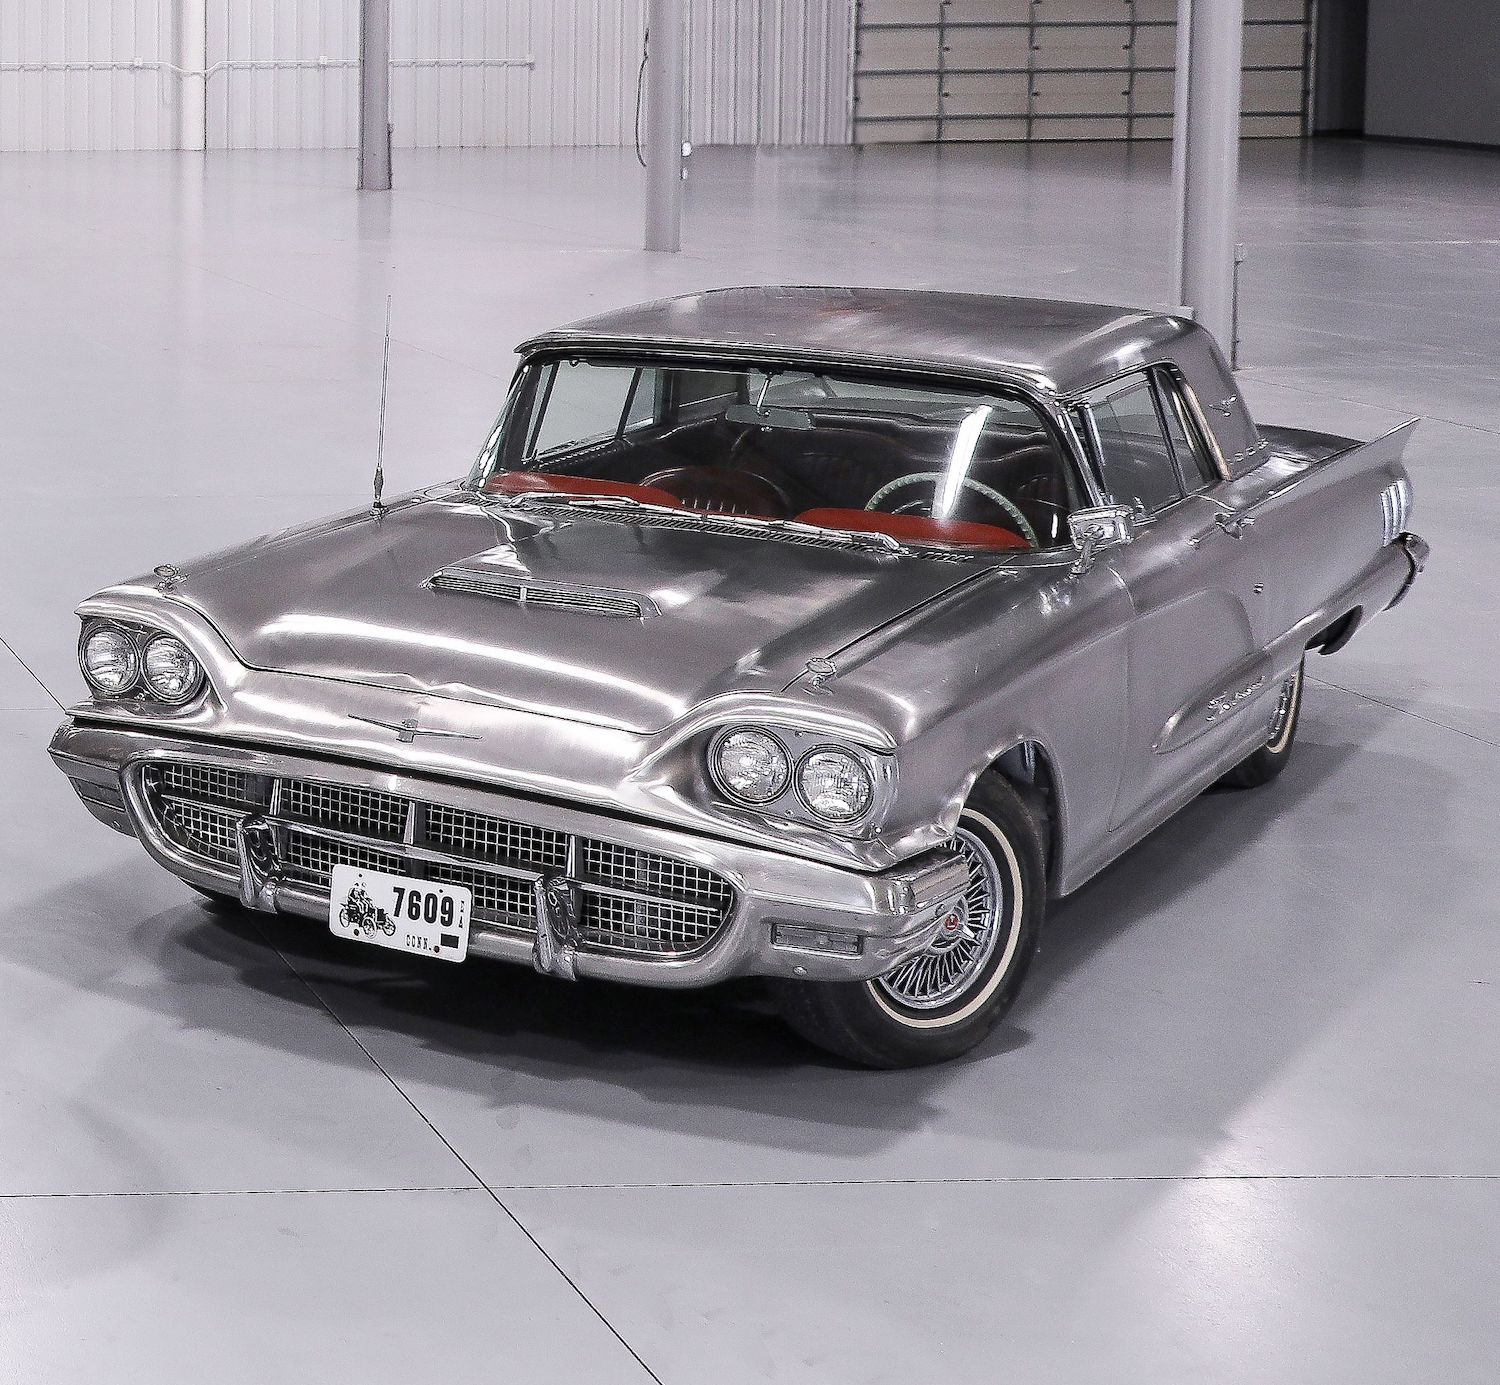 Allegheny Ludlum stainless steel-bodied Ford - 3